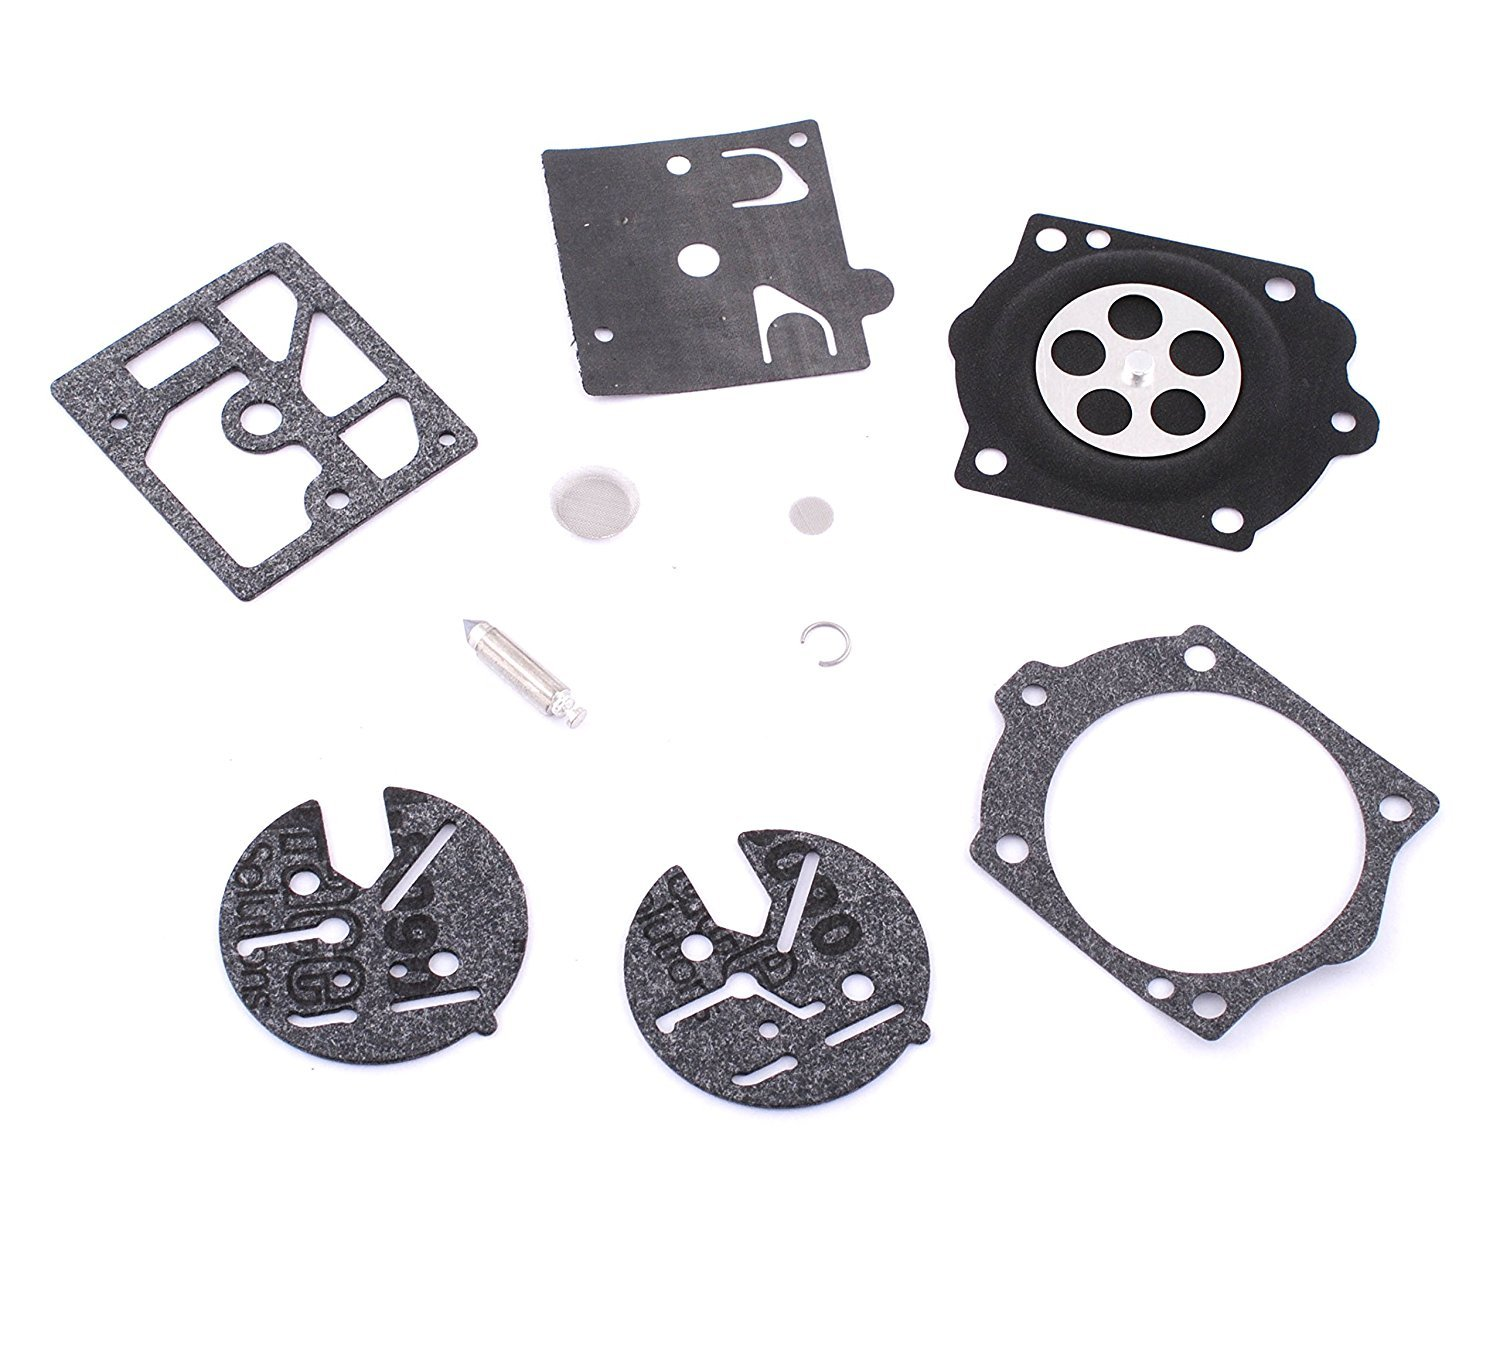 Amazon.com: PODOY Carburetor Rebuild Kit K10-HDC For Walbro Stihl 015 015AV  15AVE 015L Chainsaw parts: Garden & Outdoor